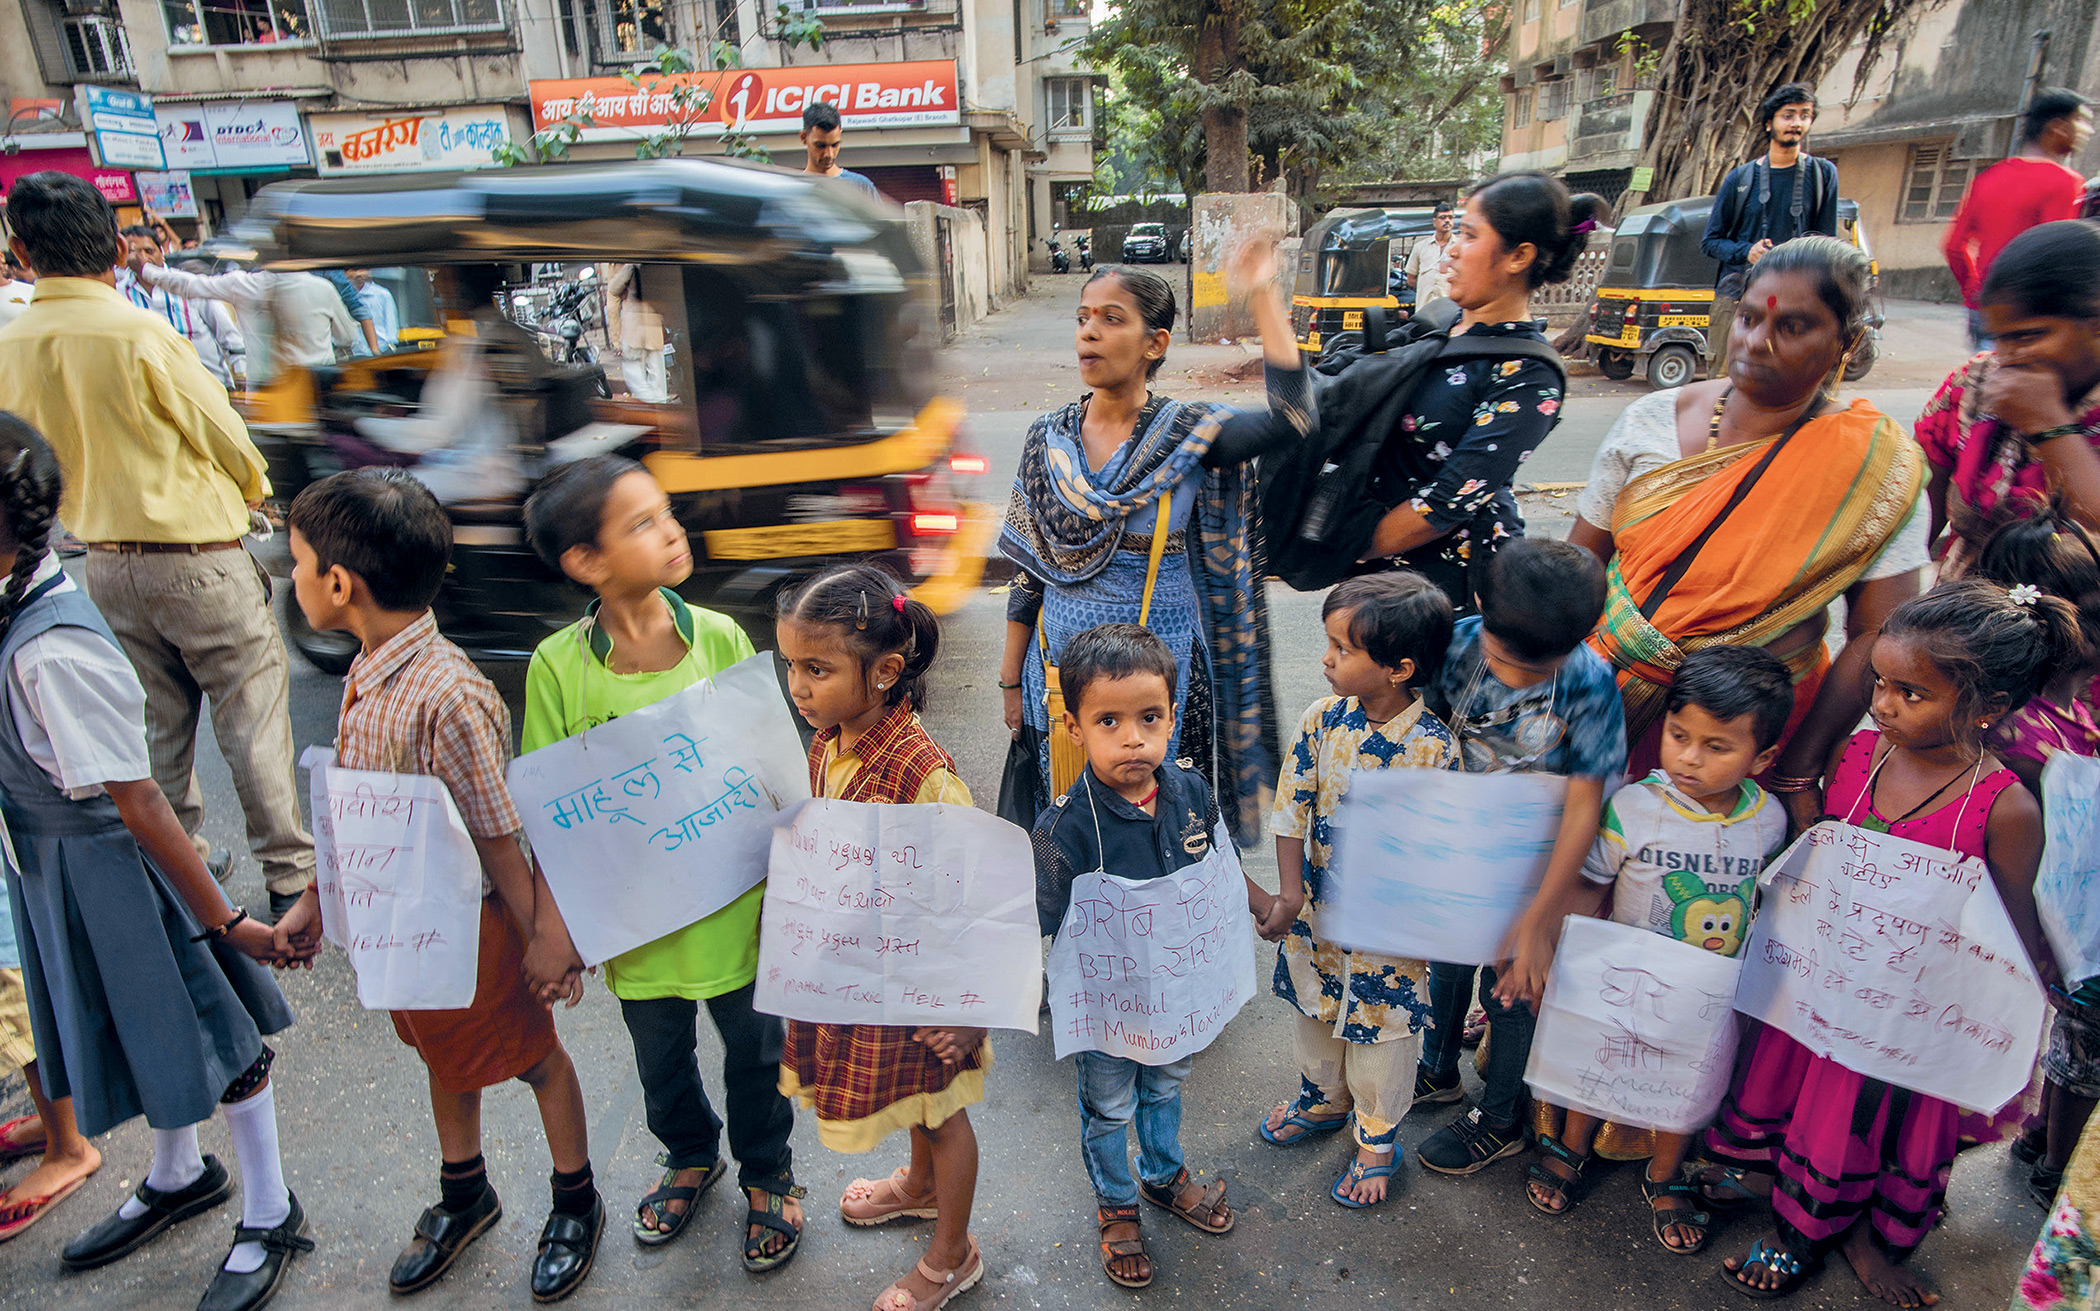 Children join with residents of Mahul to form a human chain as part of an International Human Rights Day protest against the government.